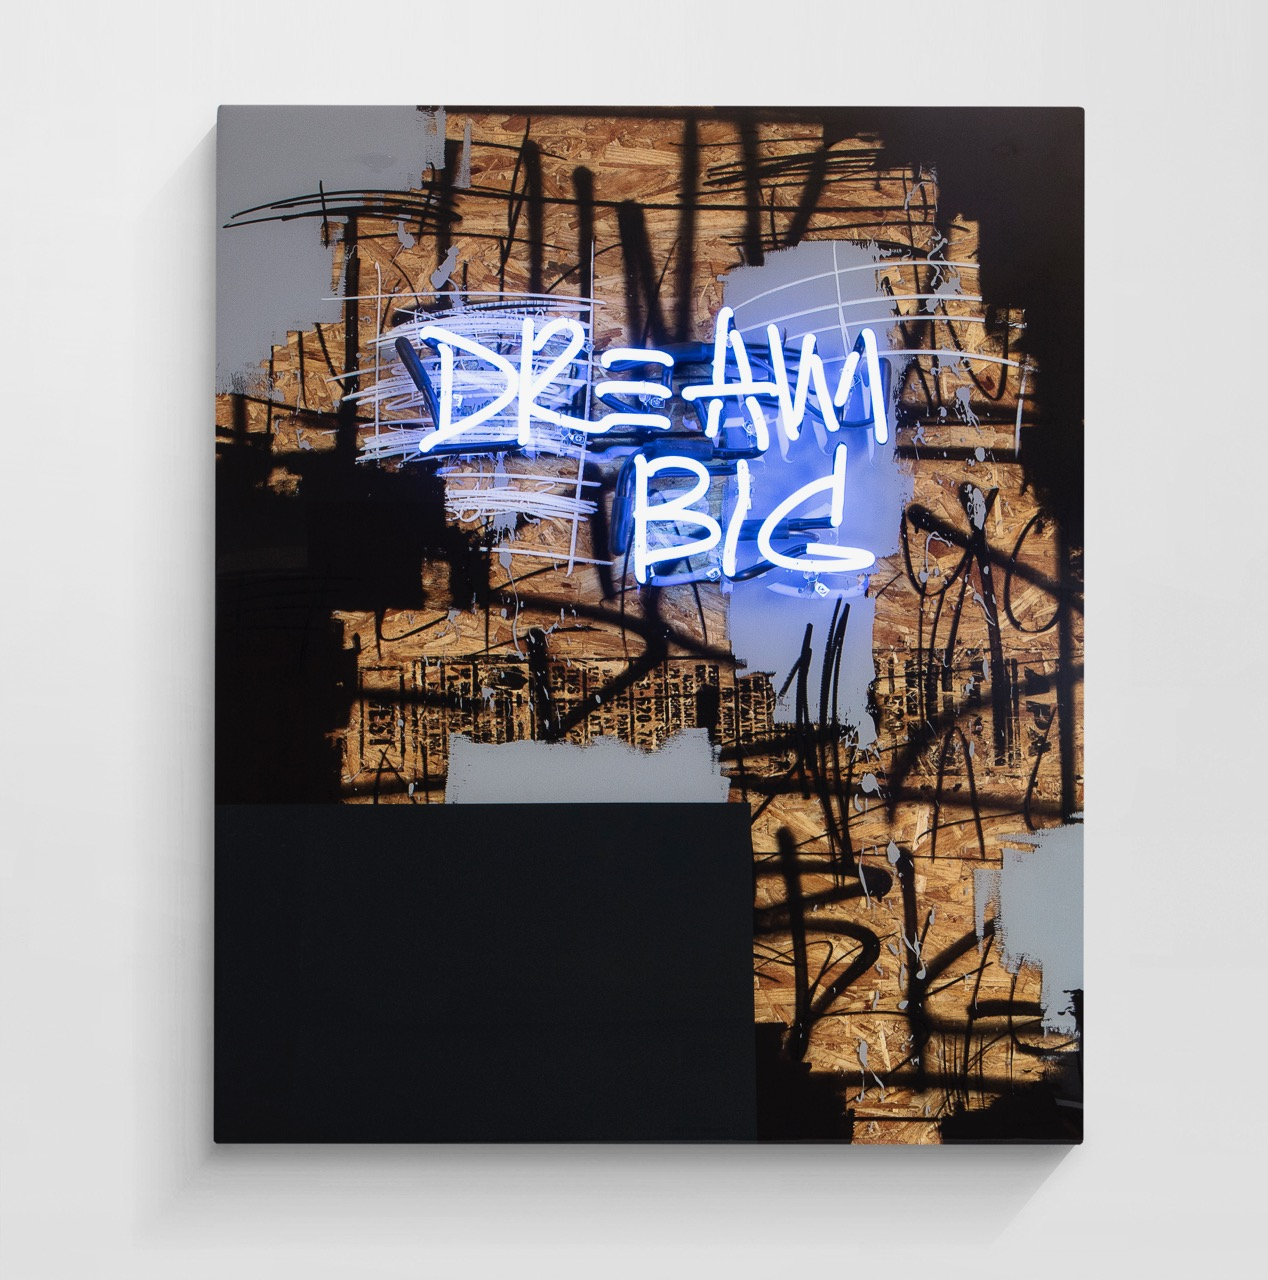 JEREMY BROWN Dream Big   mixed media between layers of resin + neon  40 x 48 inches JBR 160G